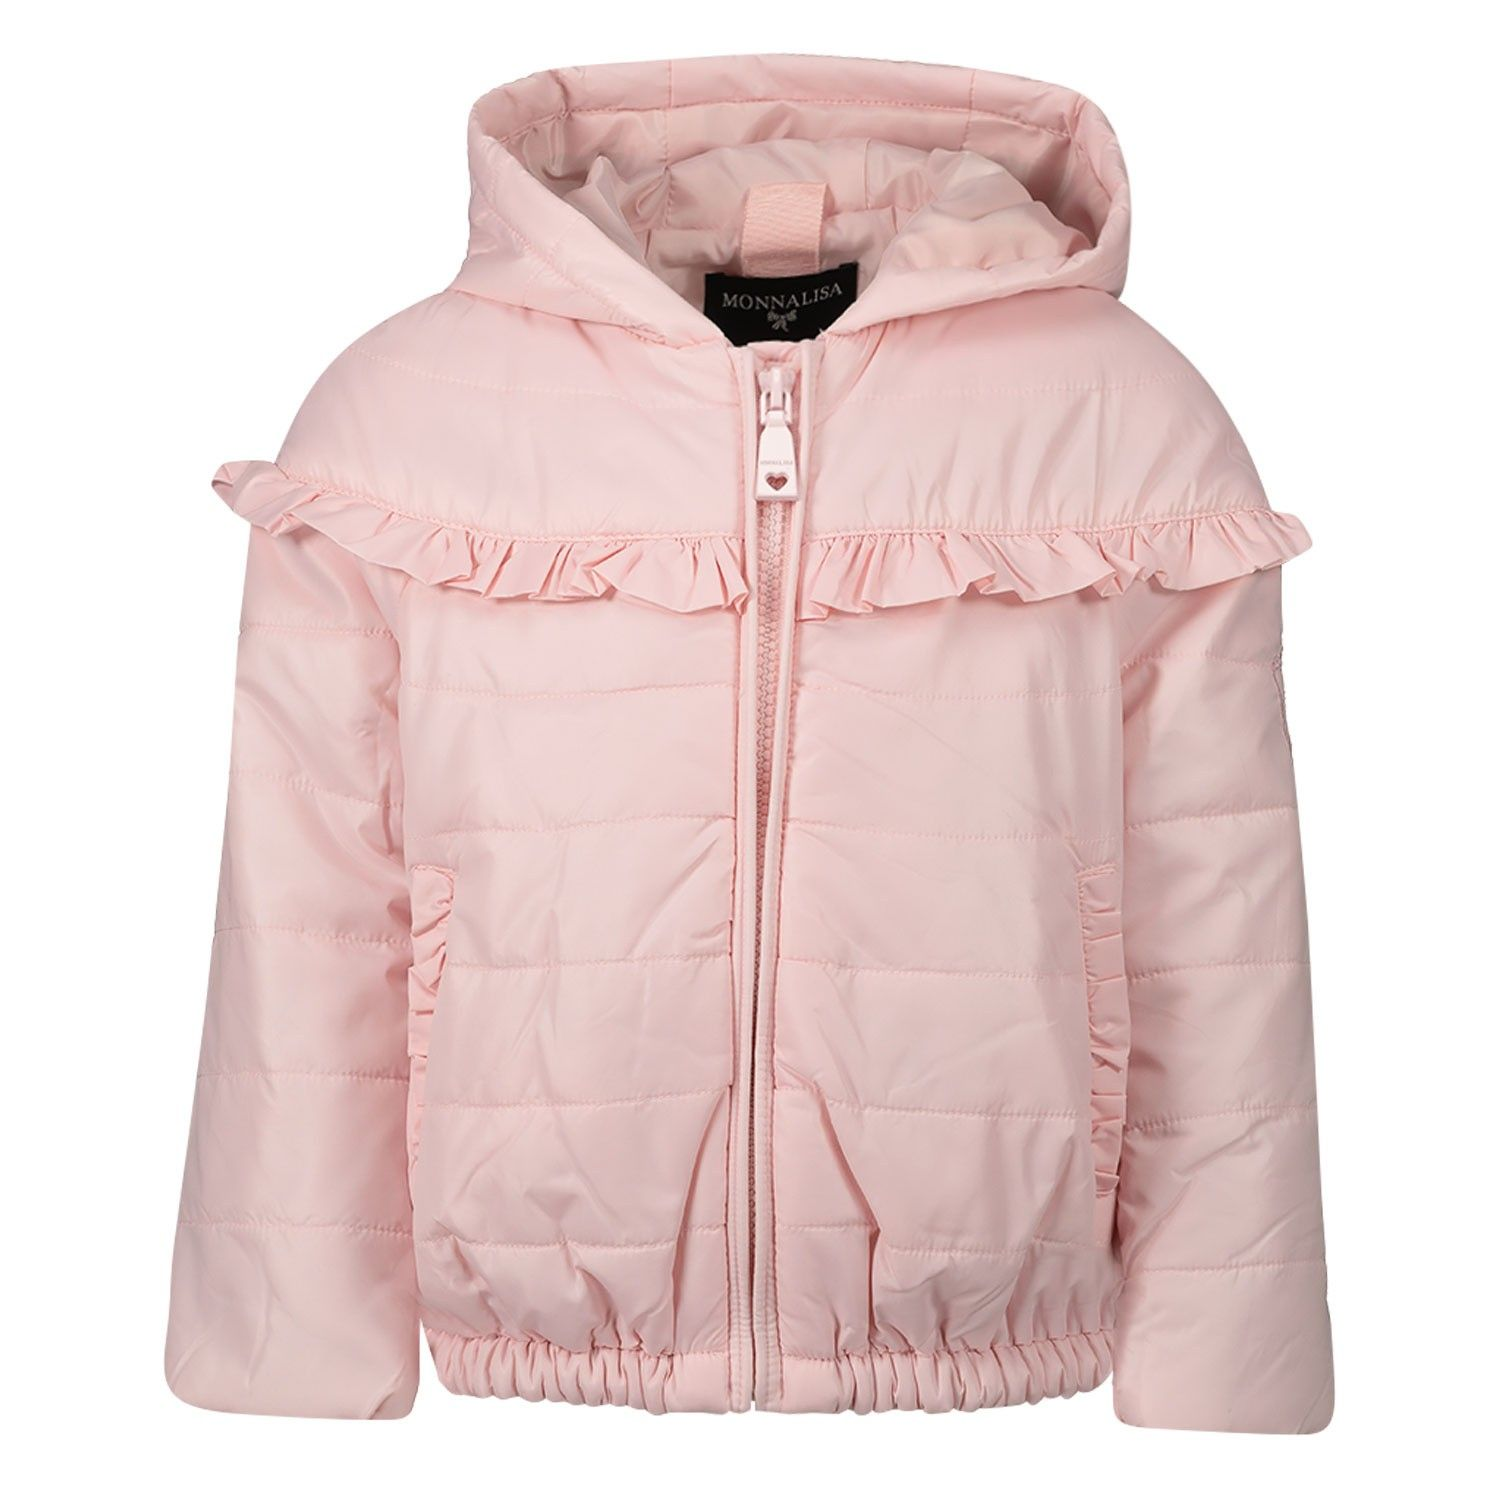 Picture of MonnaLisa 395100 baby coat light pink